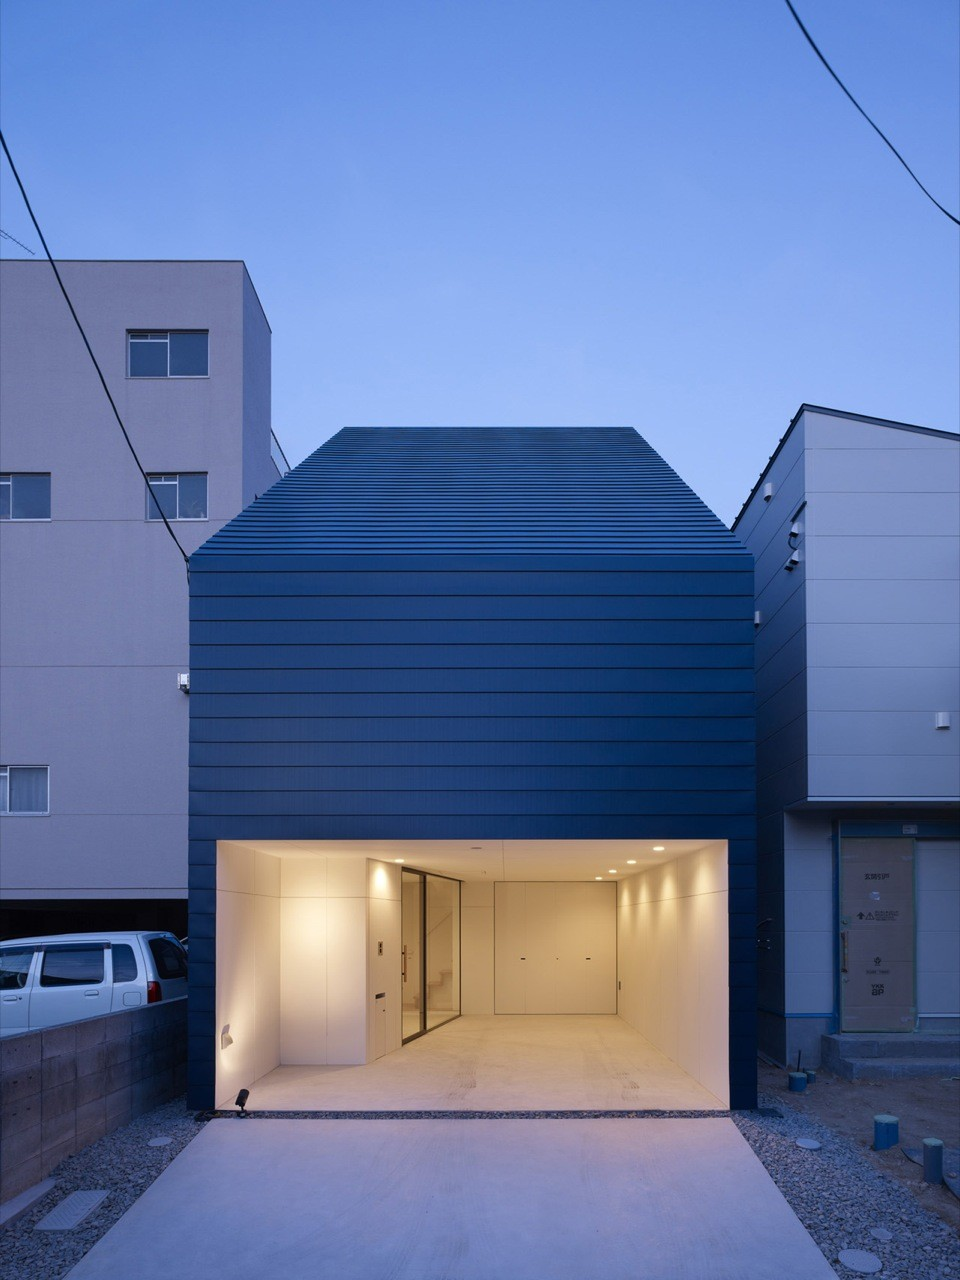 House of Ujina / MAKER, © Noriyuki Yano